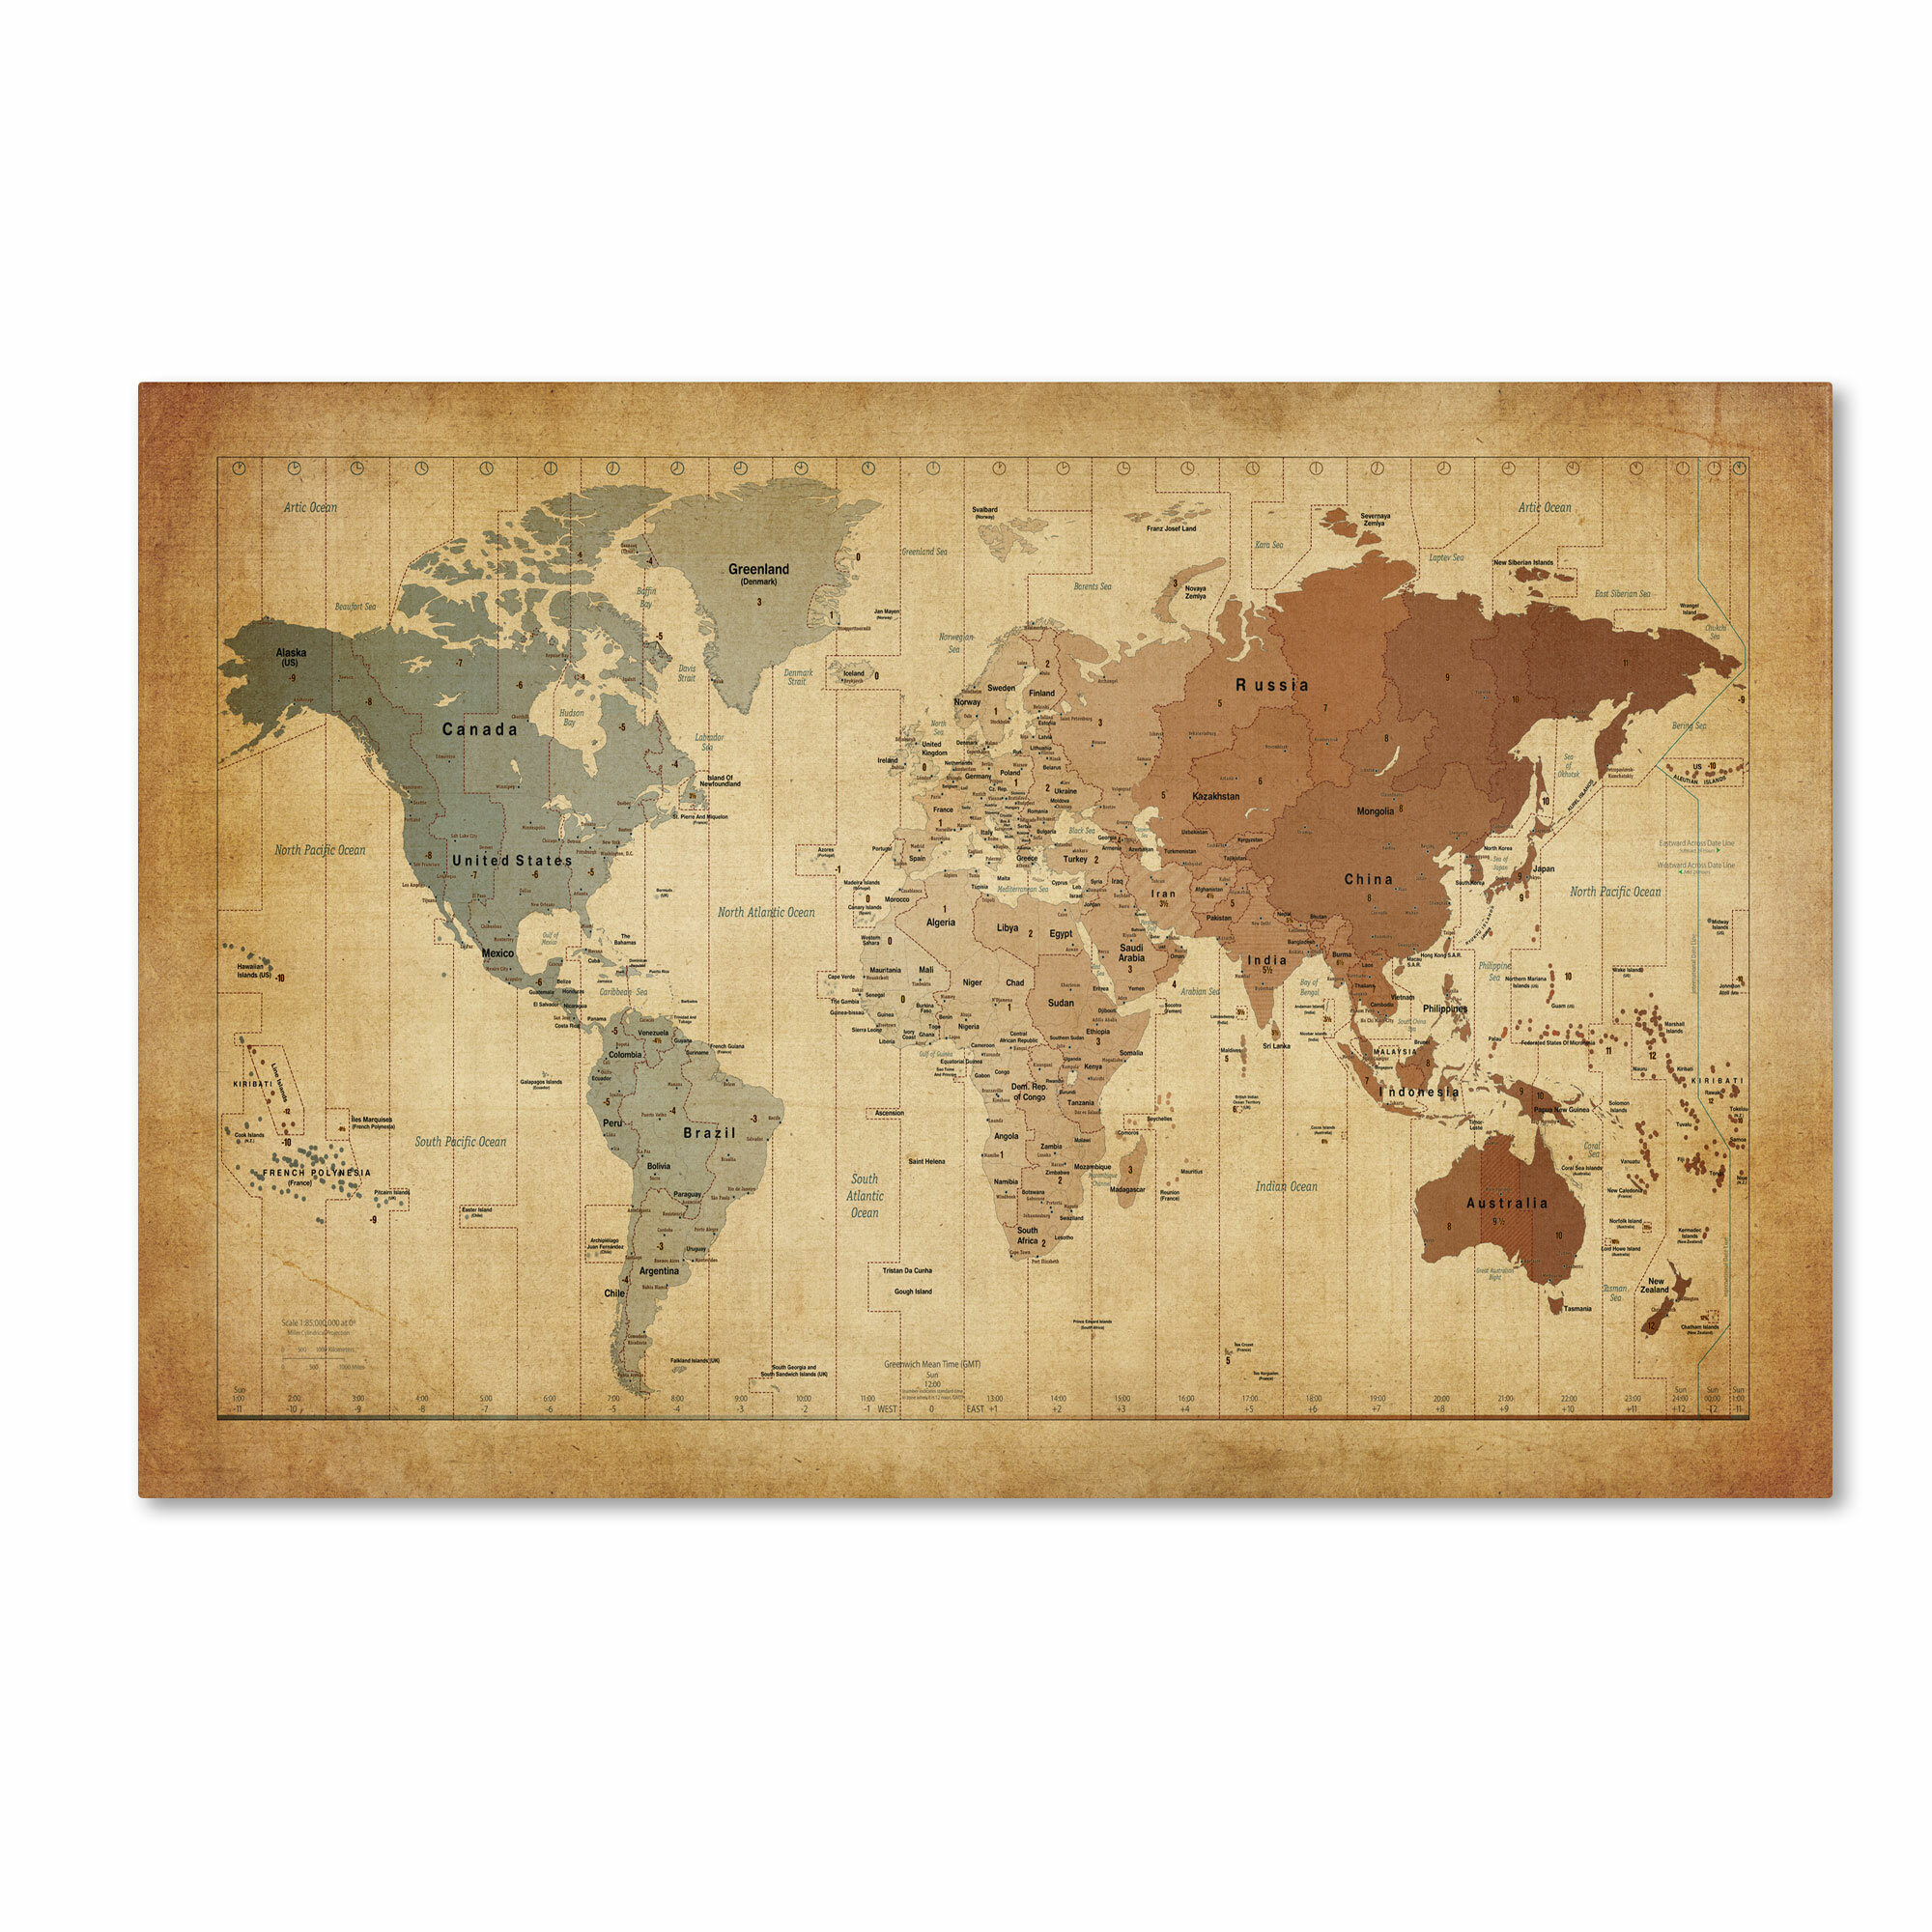 Time Zones Map Of The World Graphic Art On Wrapped Canvas Reviews